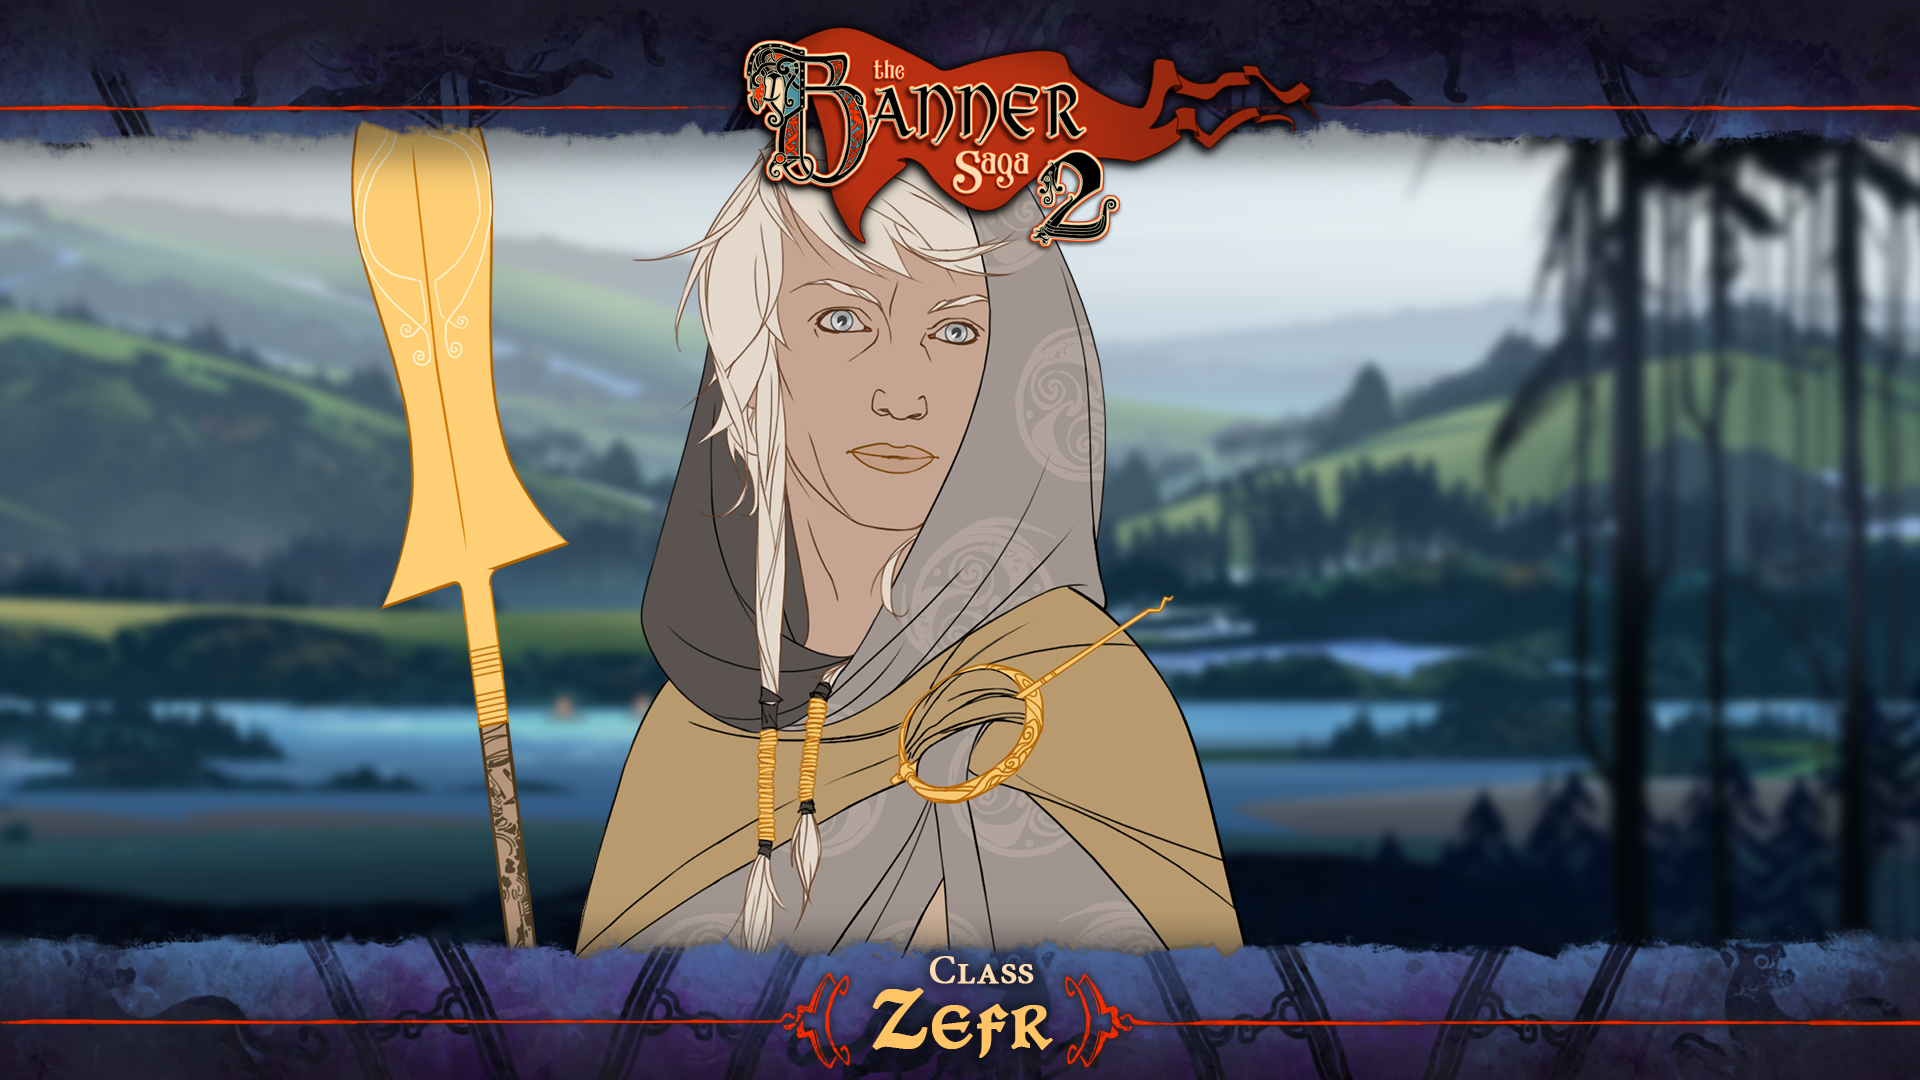 Zefr achievement for The Banner Saga 2 on Xbox One